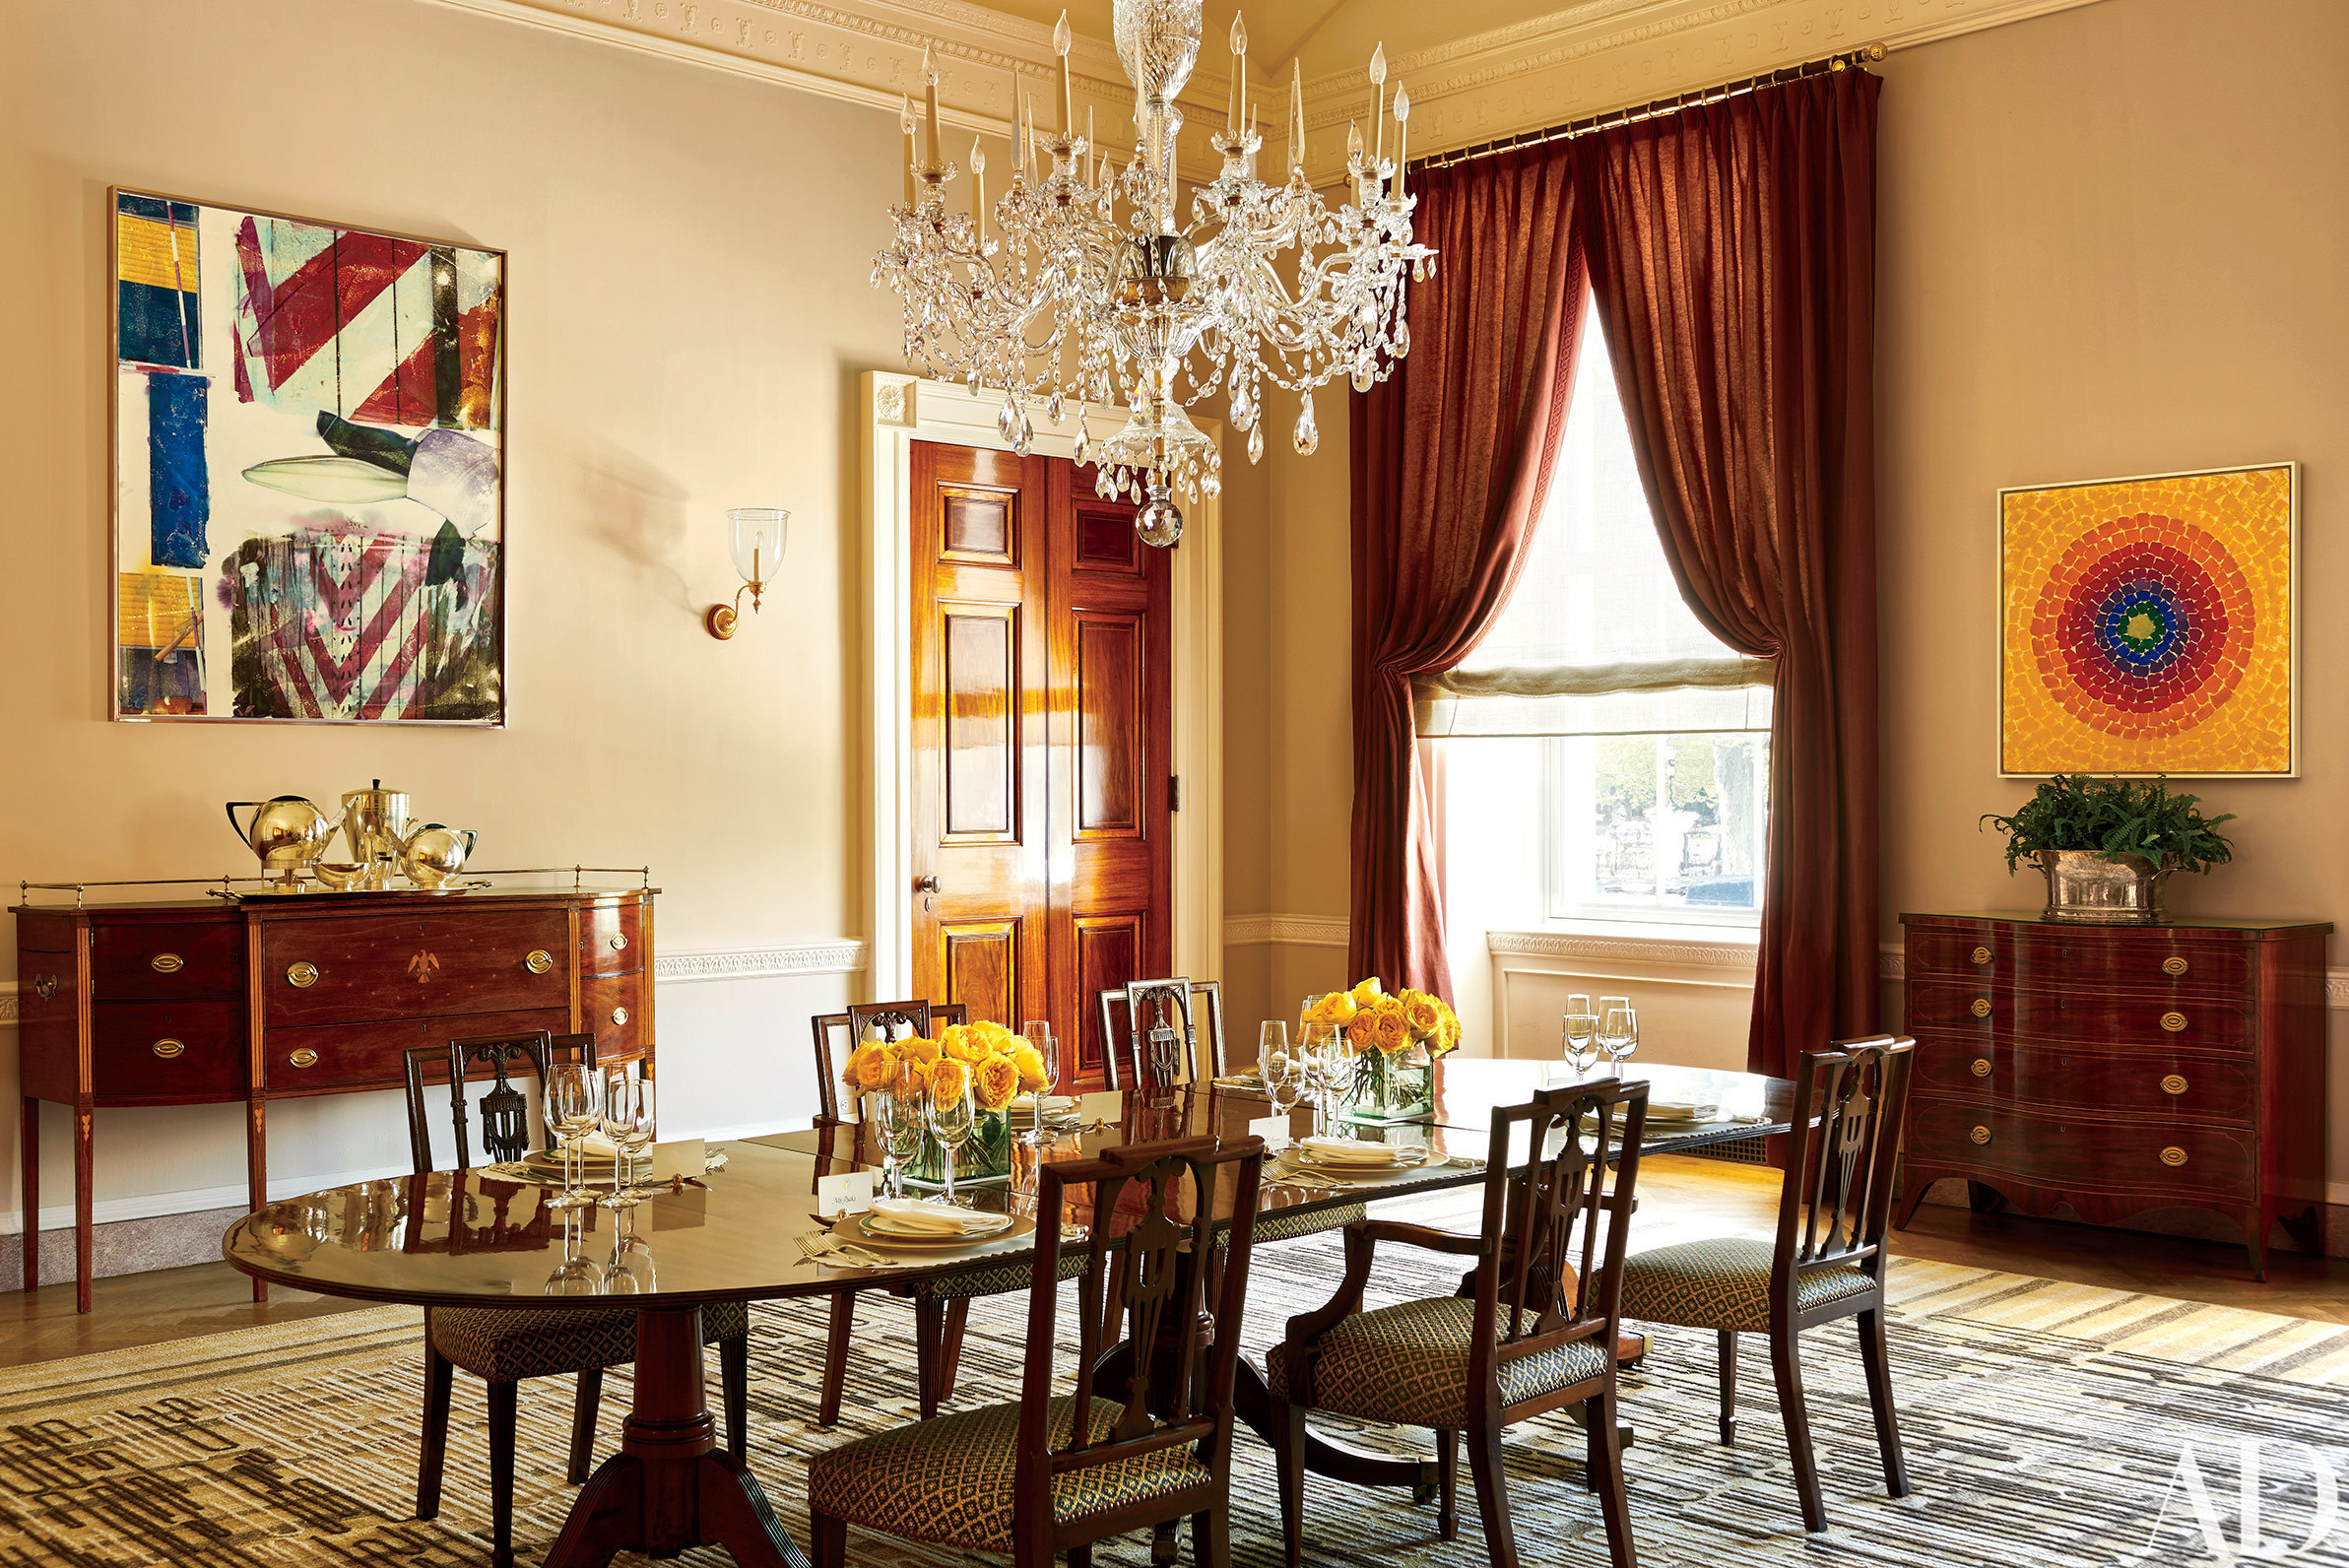 obamas reveal private residence in white house black america web. Black Bedroom Furniture Sets. Home Design Ideas